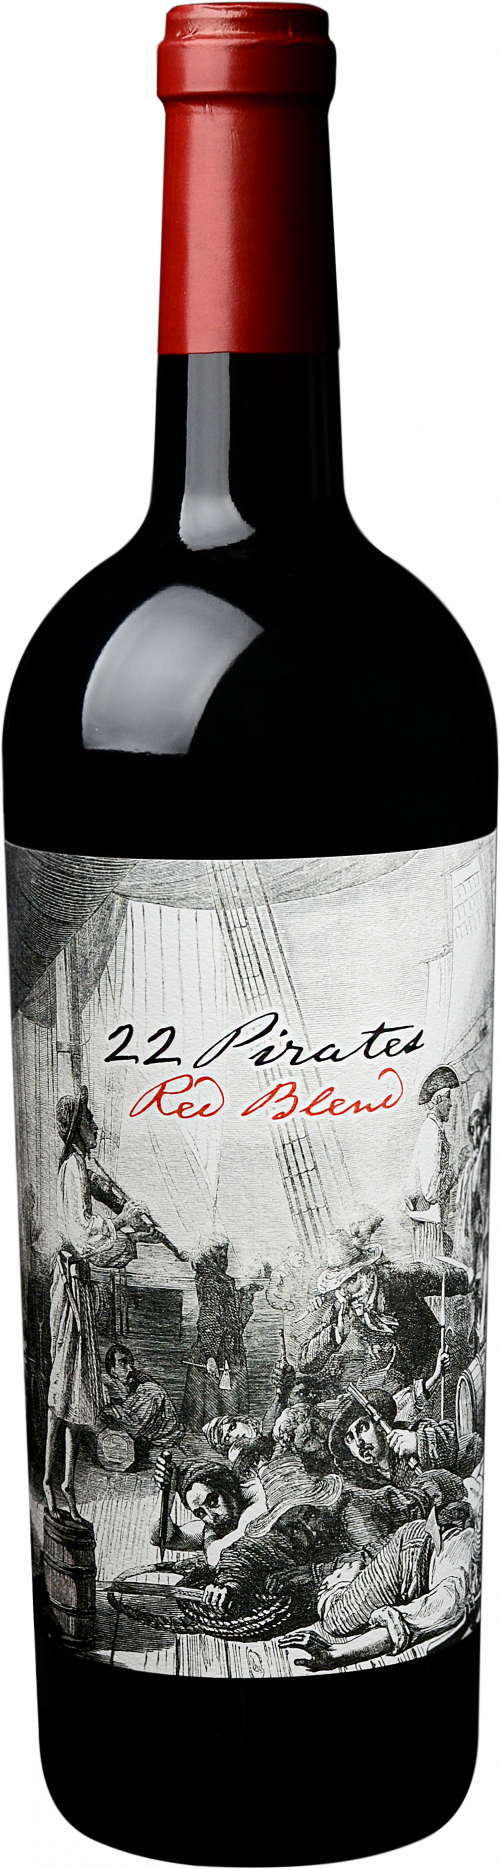 Clos LaChance 22 Pirates Red Blend 750ml